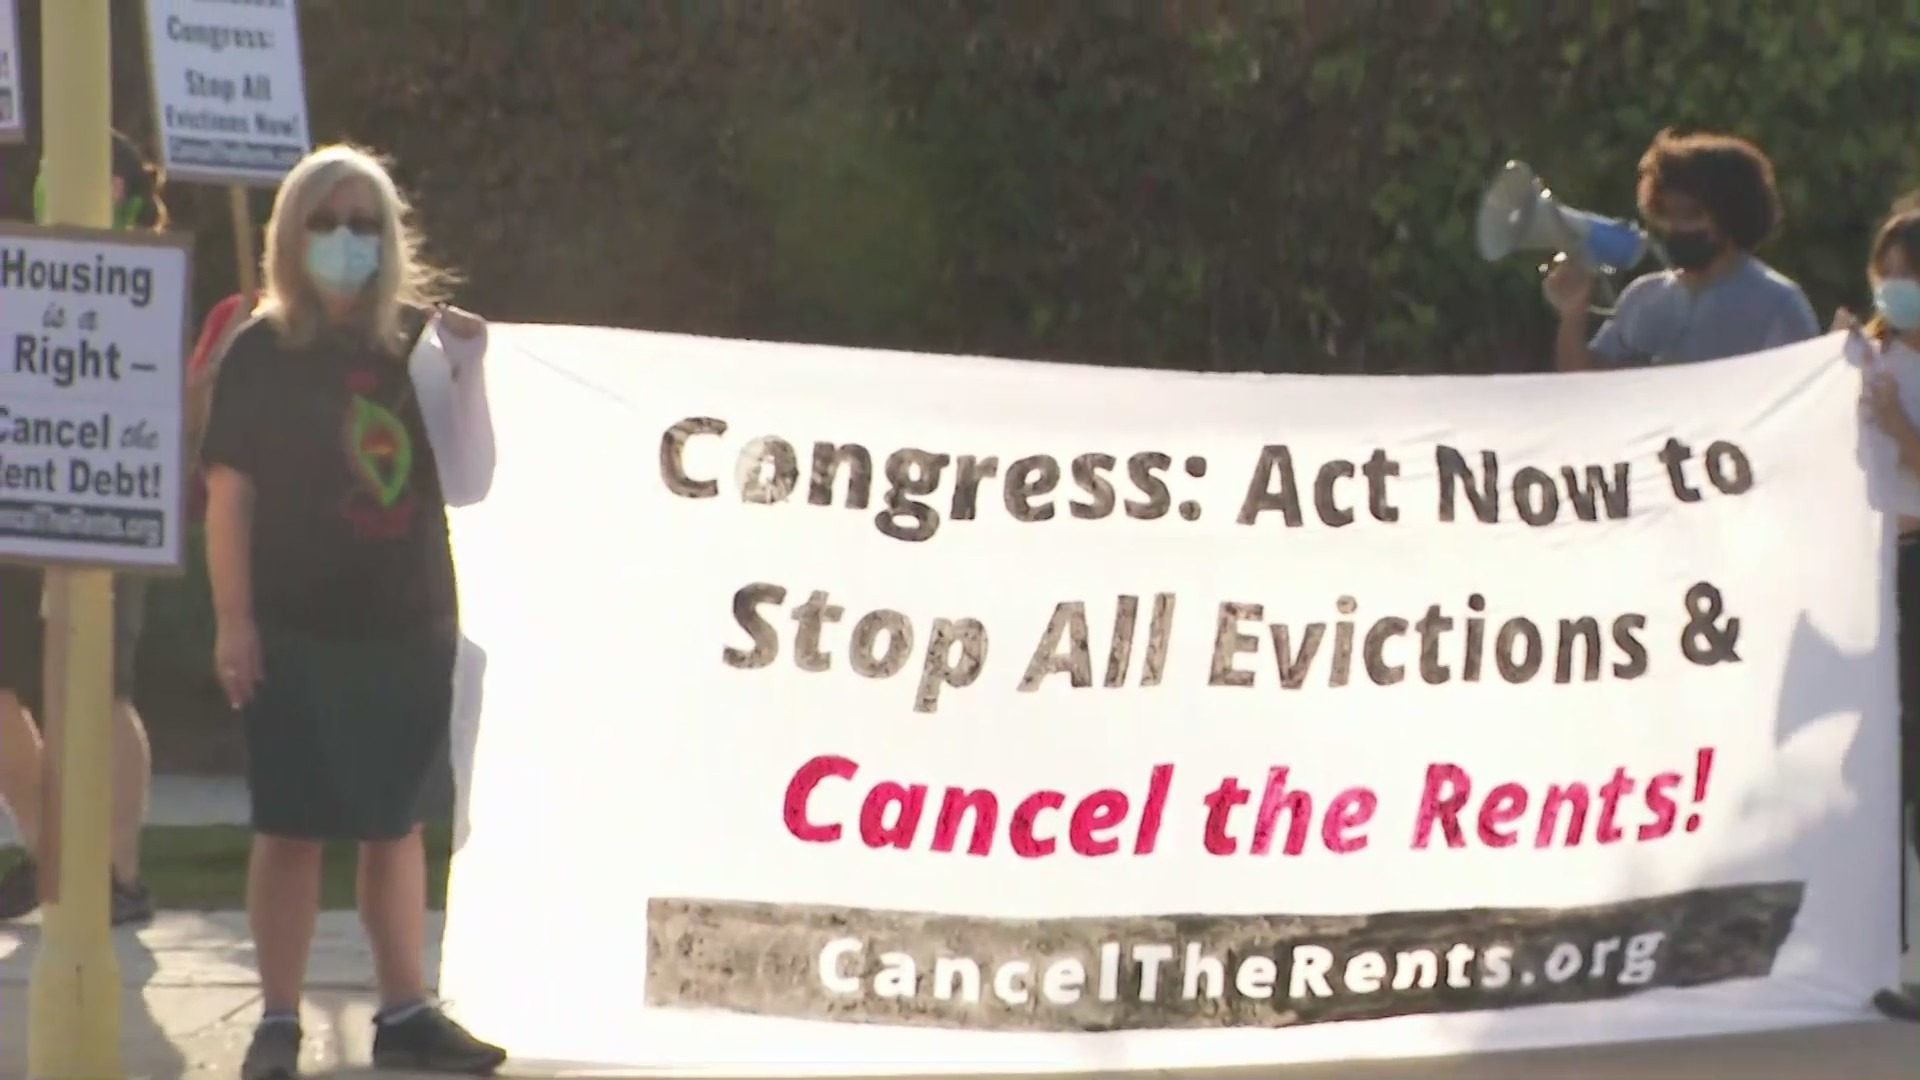 Protesters in Alhambra on Sept. 25, 2021 want more action taken to prevent people from being kicked out of their homes due to the pandemic. (KTLA)